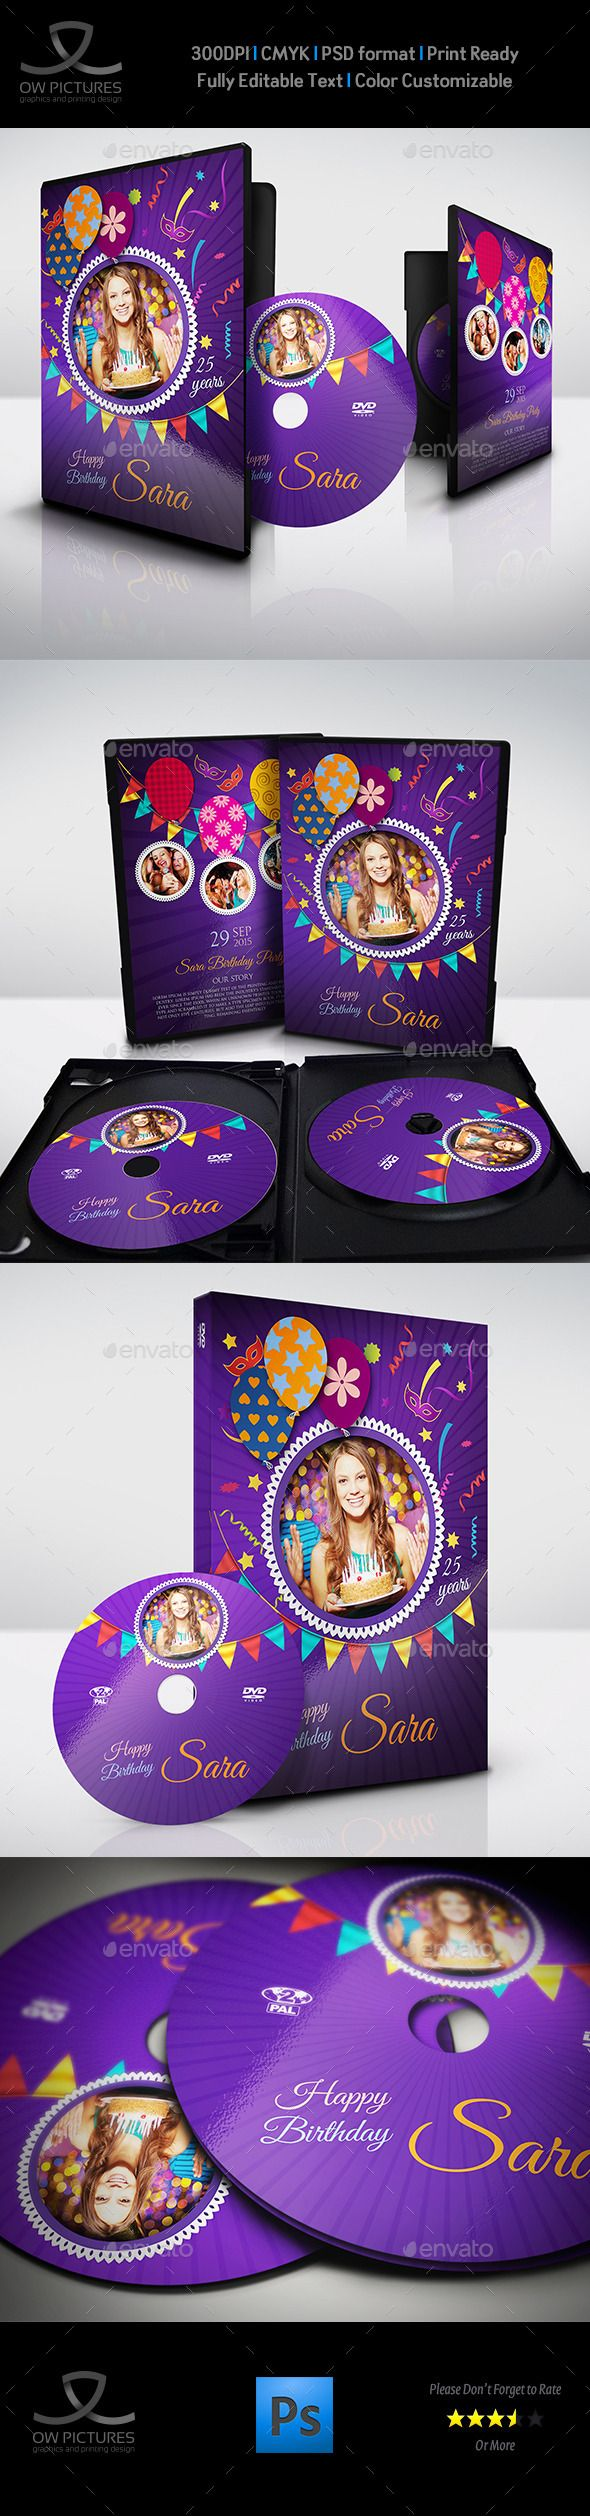 Birthday Party DVD Cover and DVD Label Template PSD. Download here: http://graphicriver.net/item/birthday-party-dvd-cover-and-dvd-label-template-3/11264169?ref=ksioks